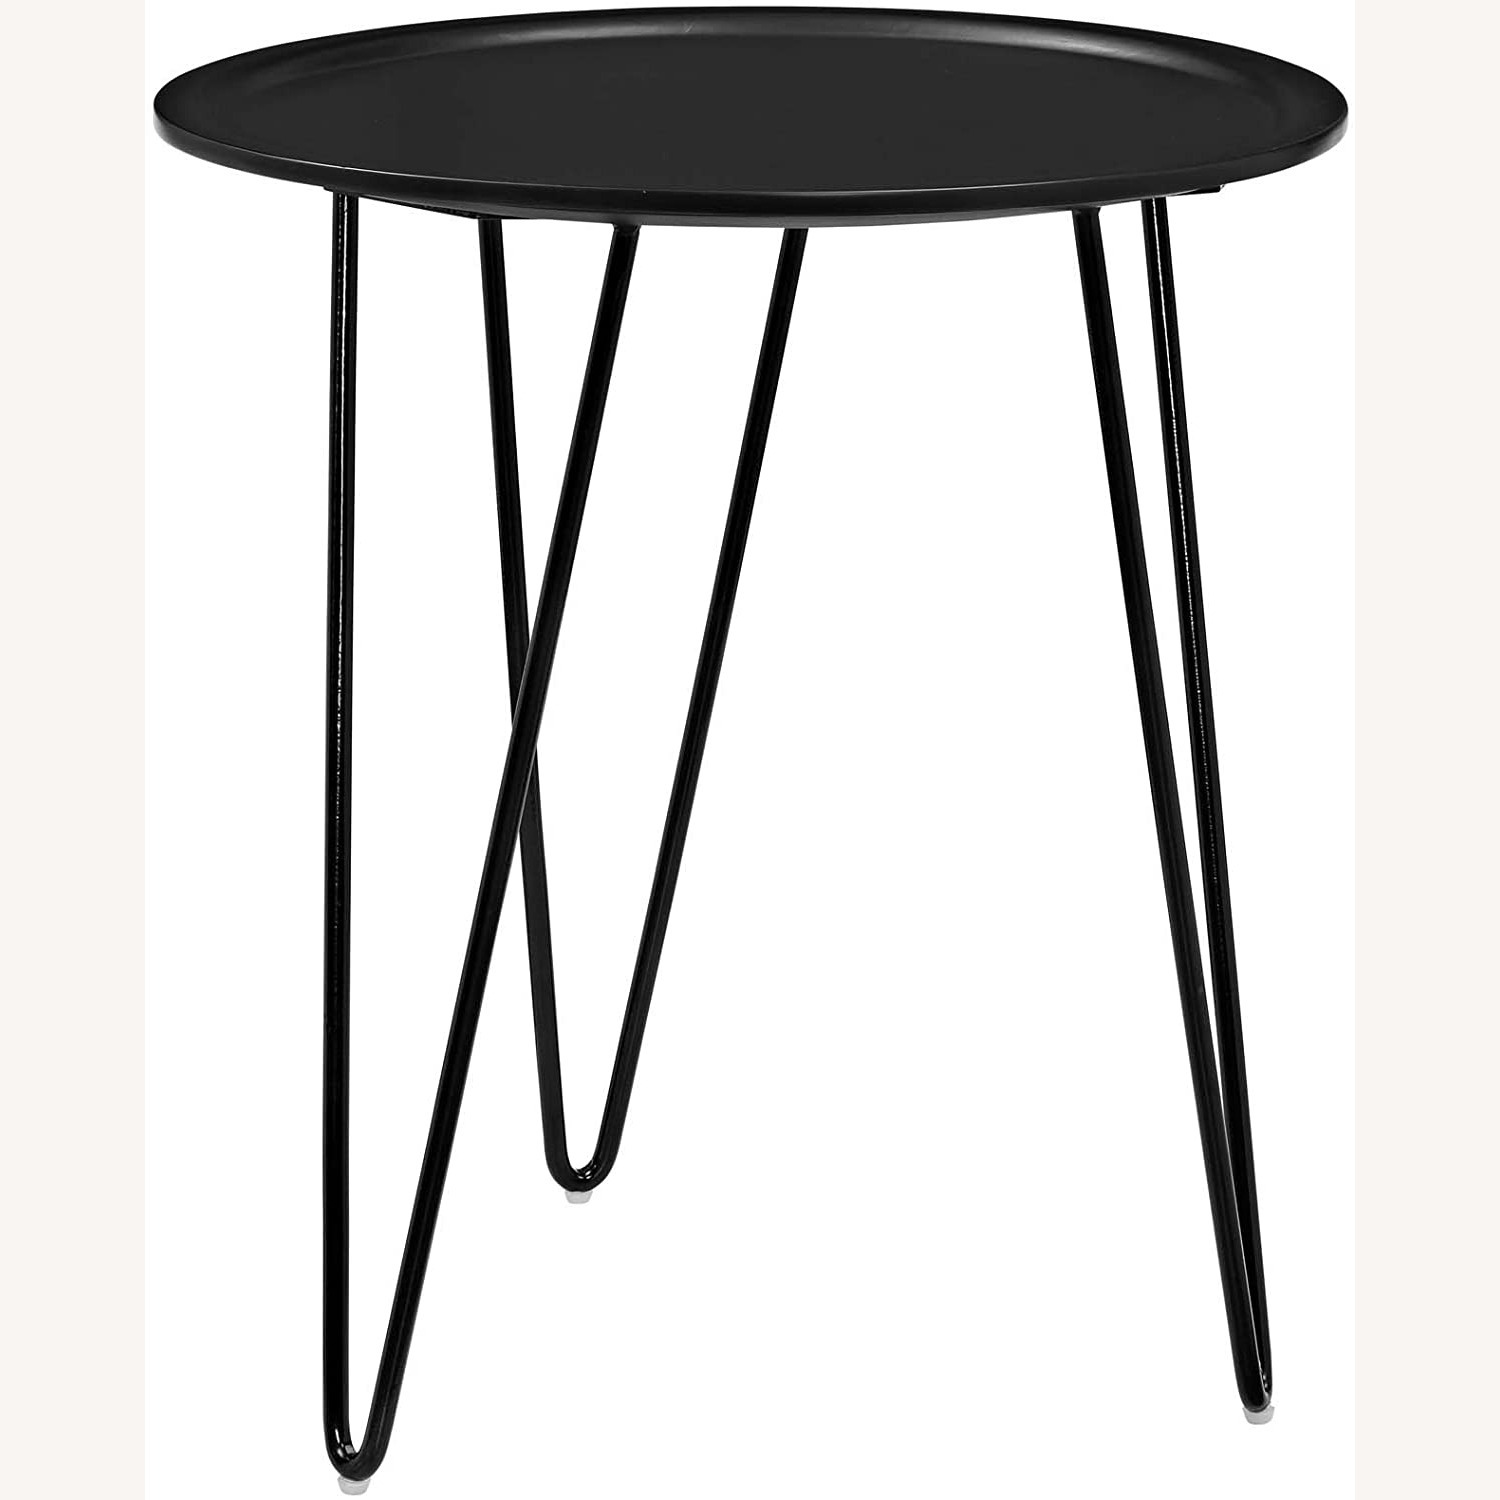 Mid-Century Style Side Table In Black Matte Finish - image-1